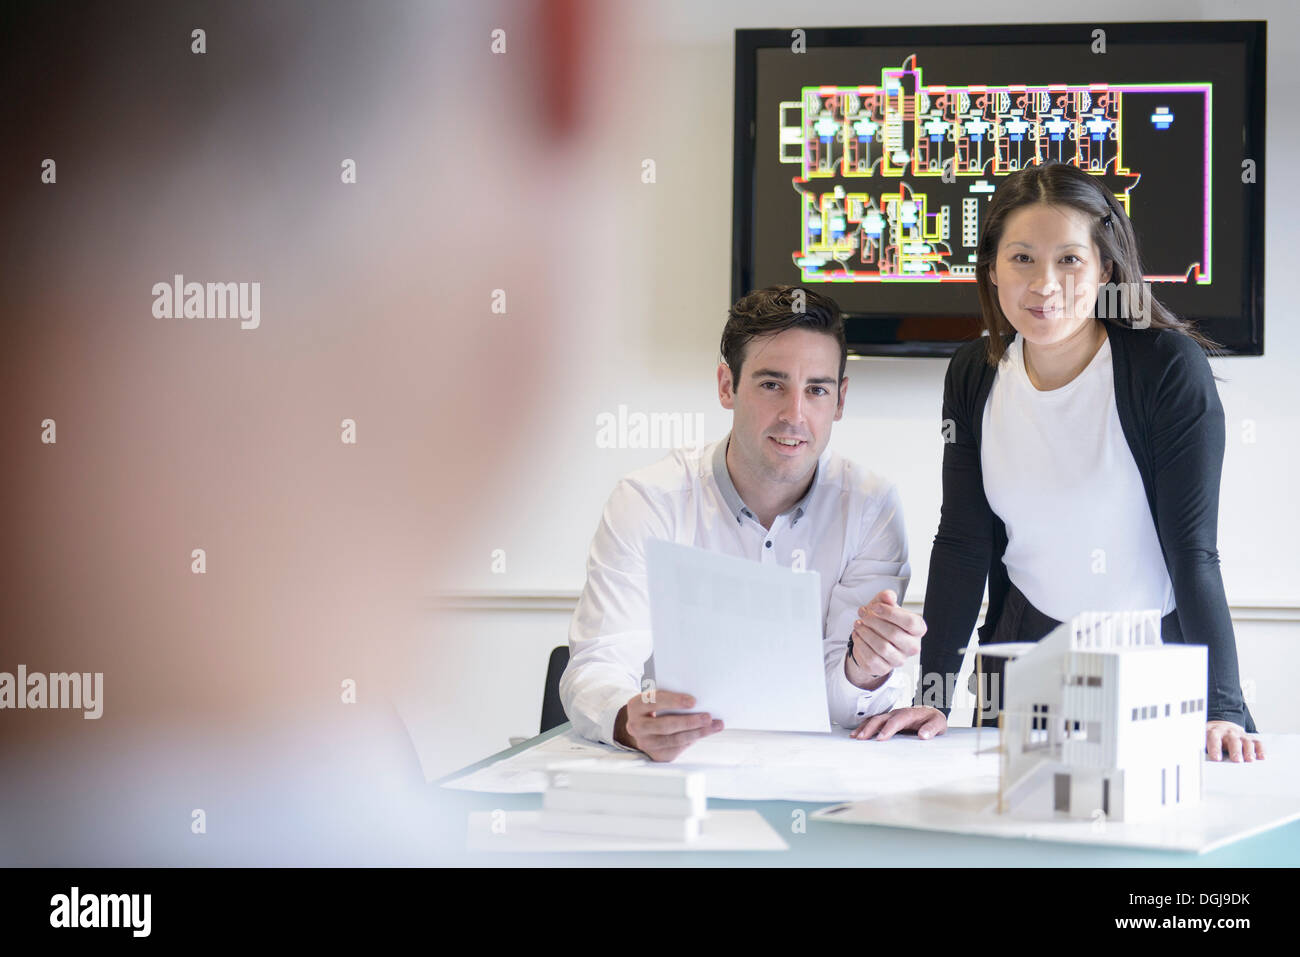 Architects making presentation in boardroom with model building - Stock Image